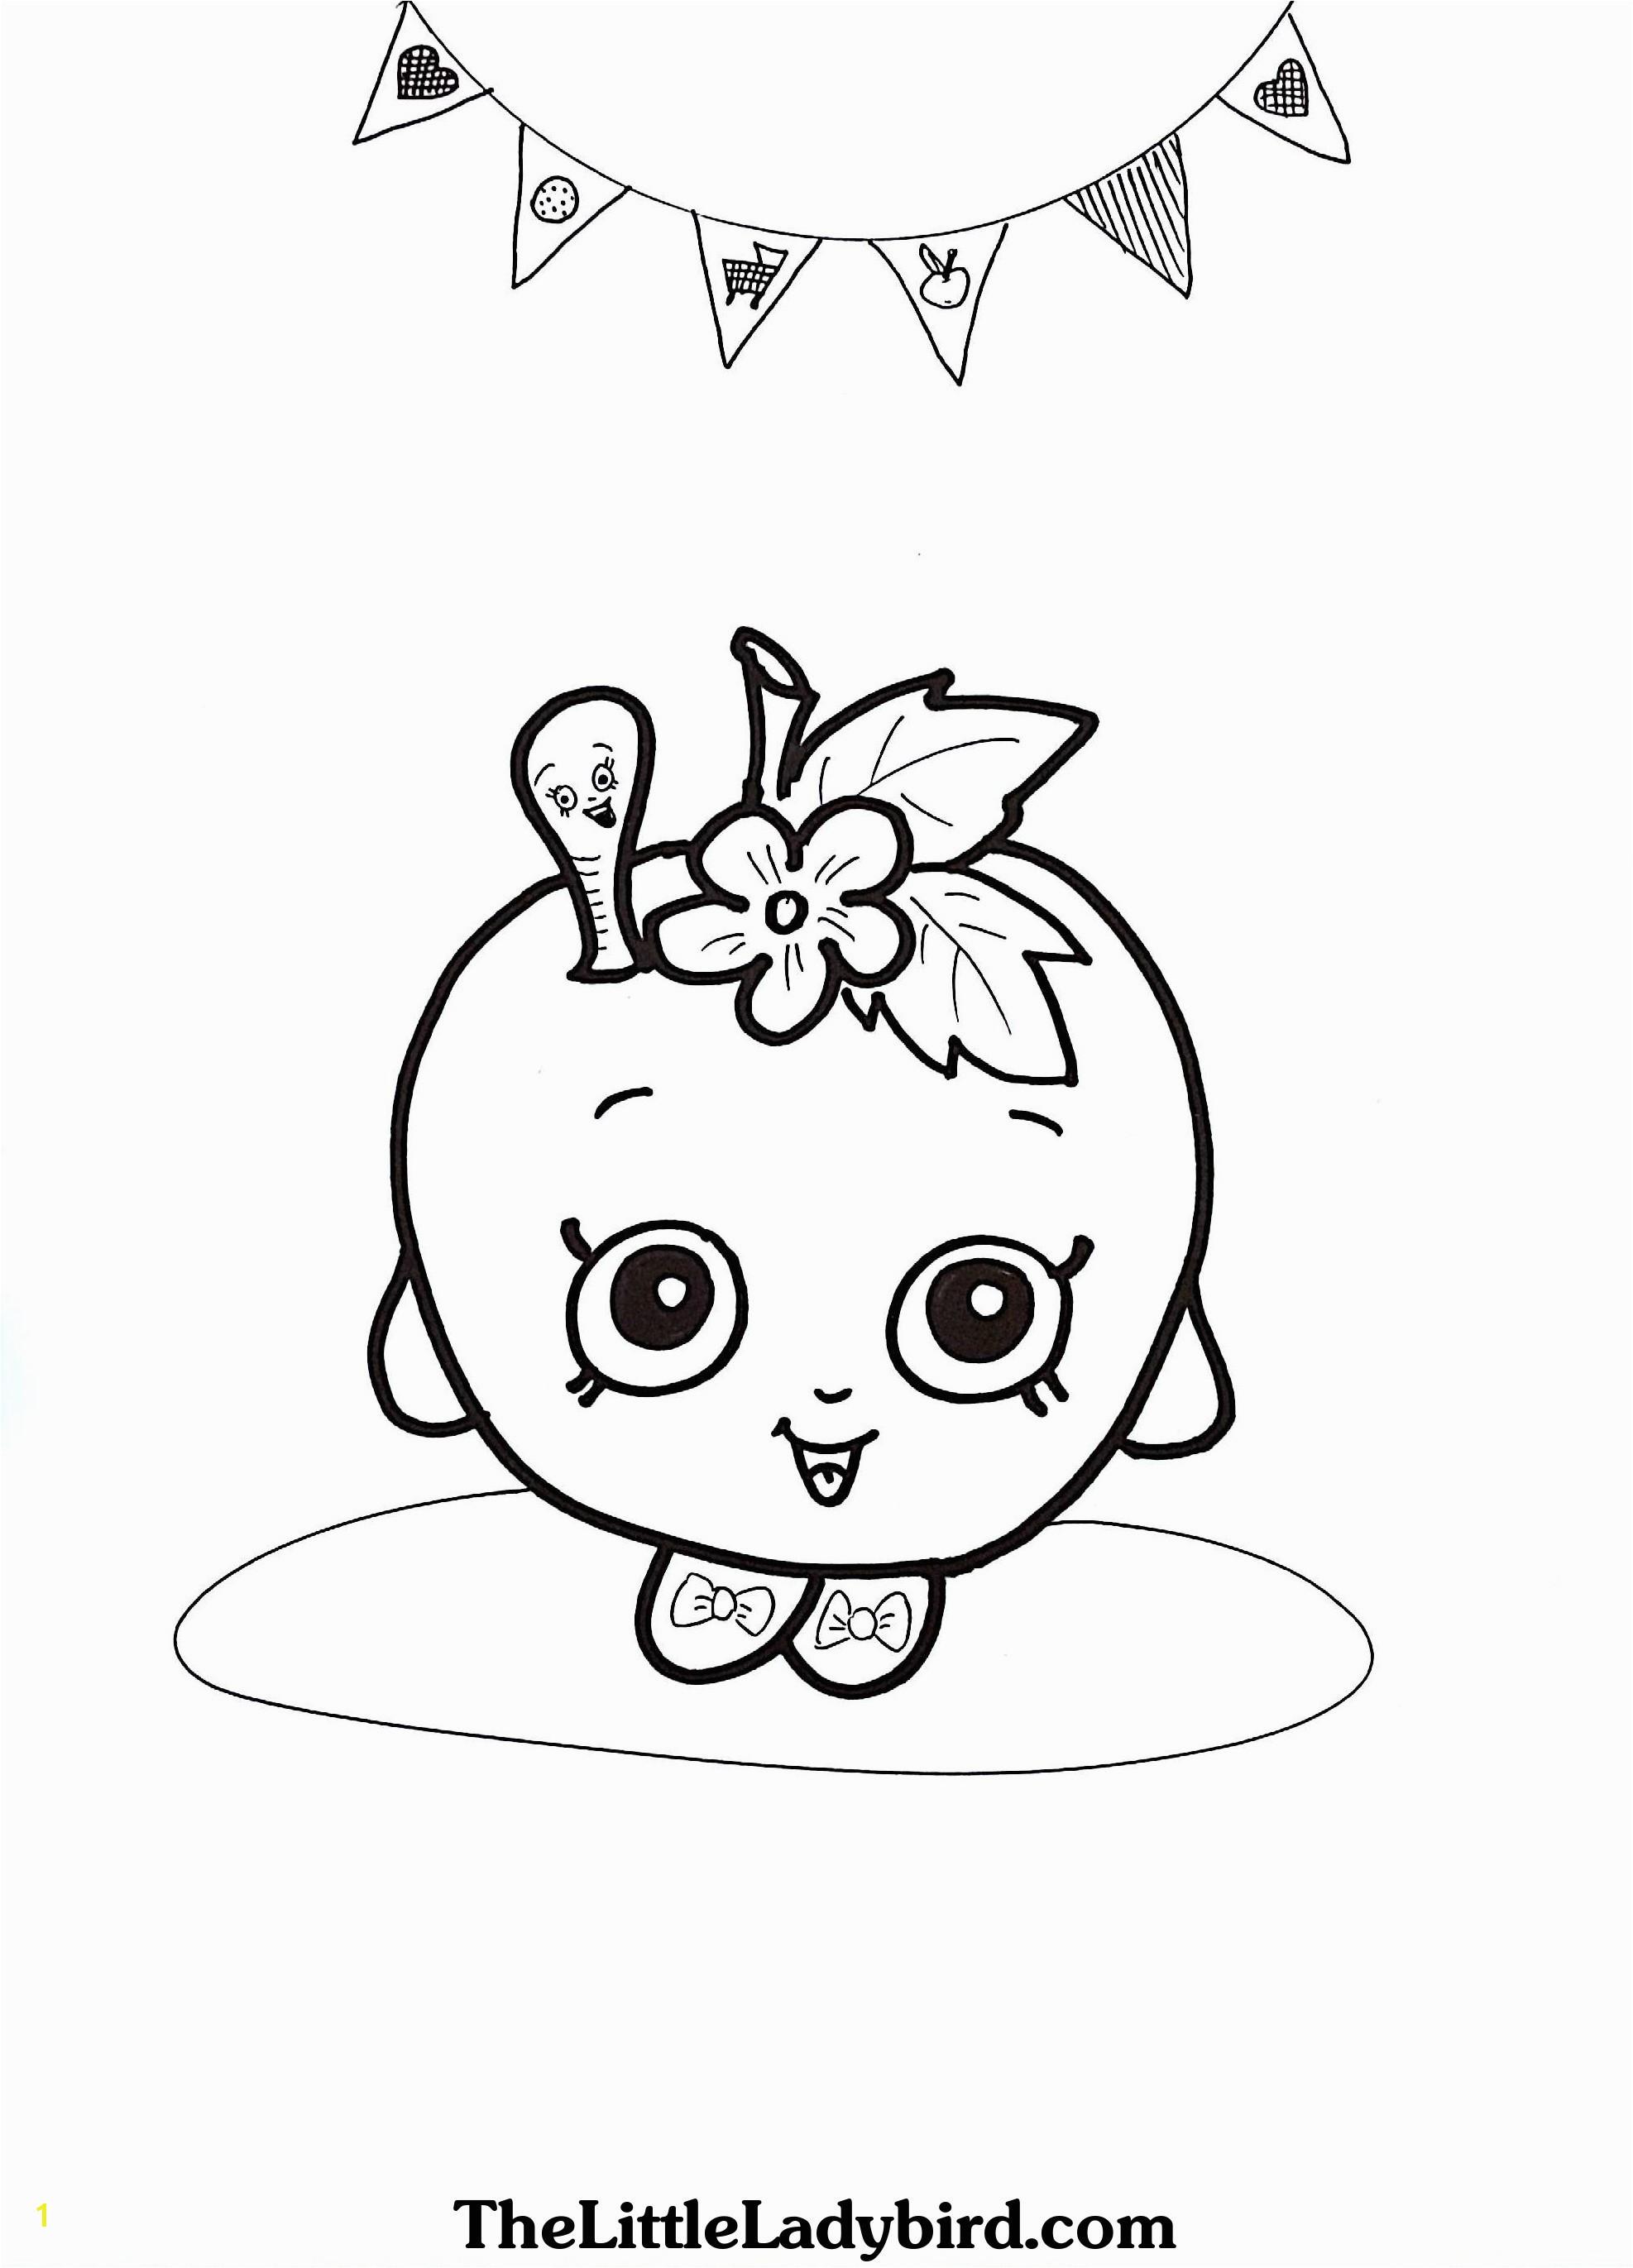 Apple Blossom Shopkin Coloring Page Best Coloring Pages Apple Blossoms Katesgrove